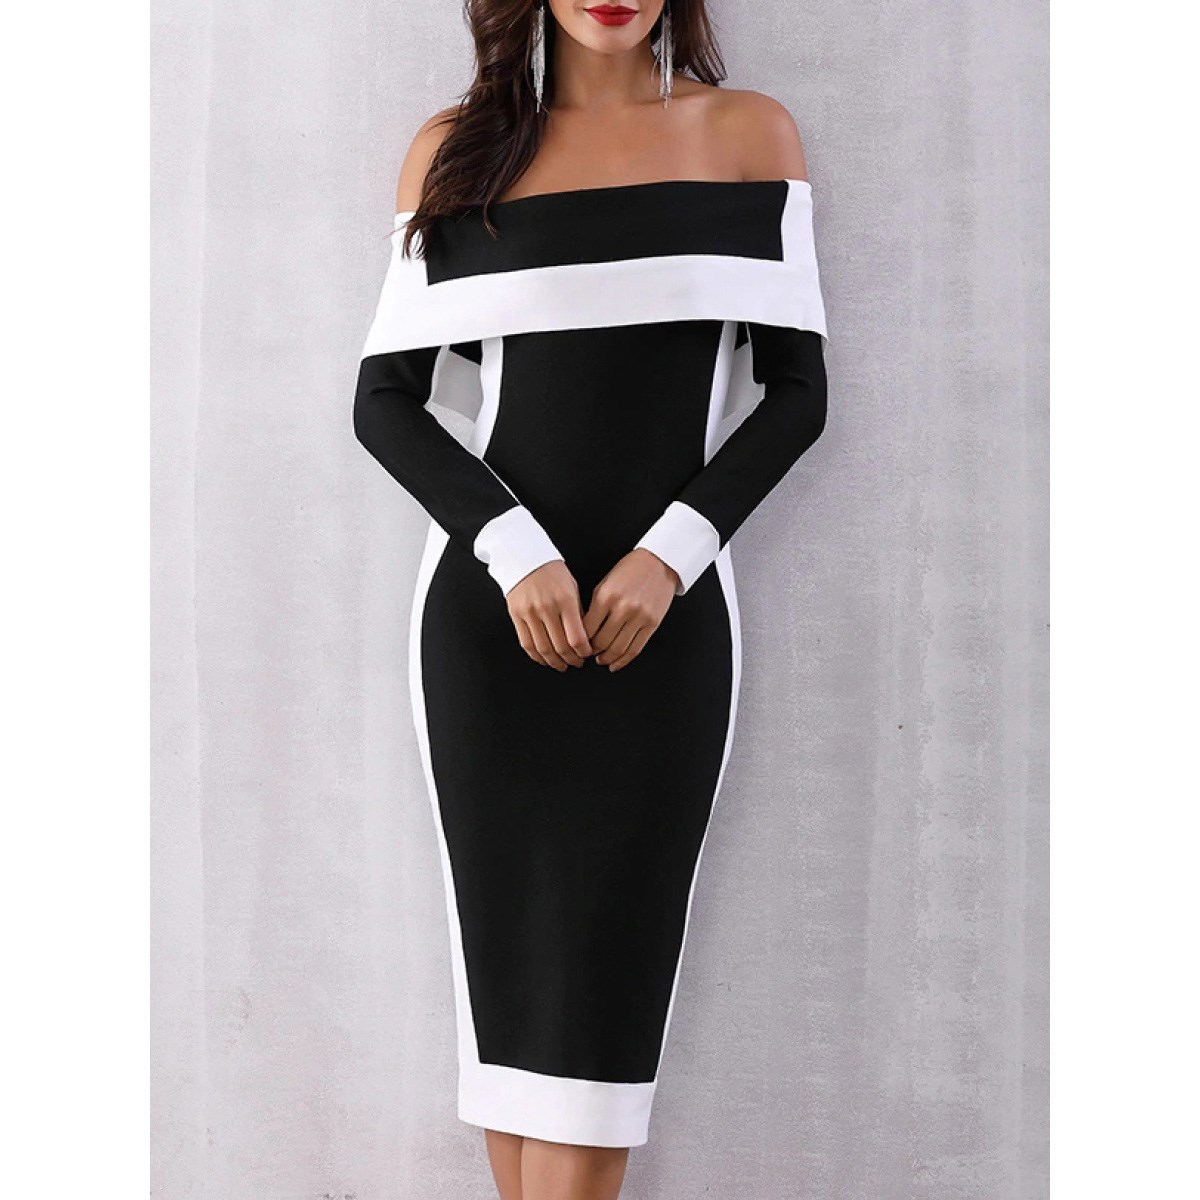 2019 Sexy Backless Party Dress Women Black Bodycon Dress Women Clothes Plus Size 5Xl Long Sleeve Office Midi Dress in Dresses from Women 39 s Clothing